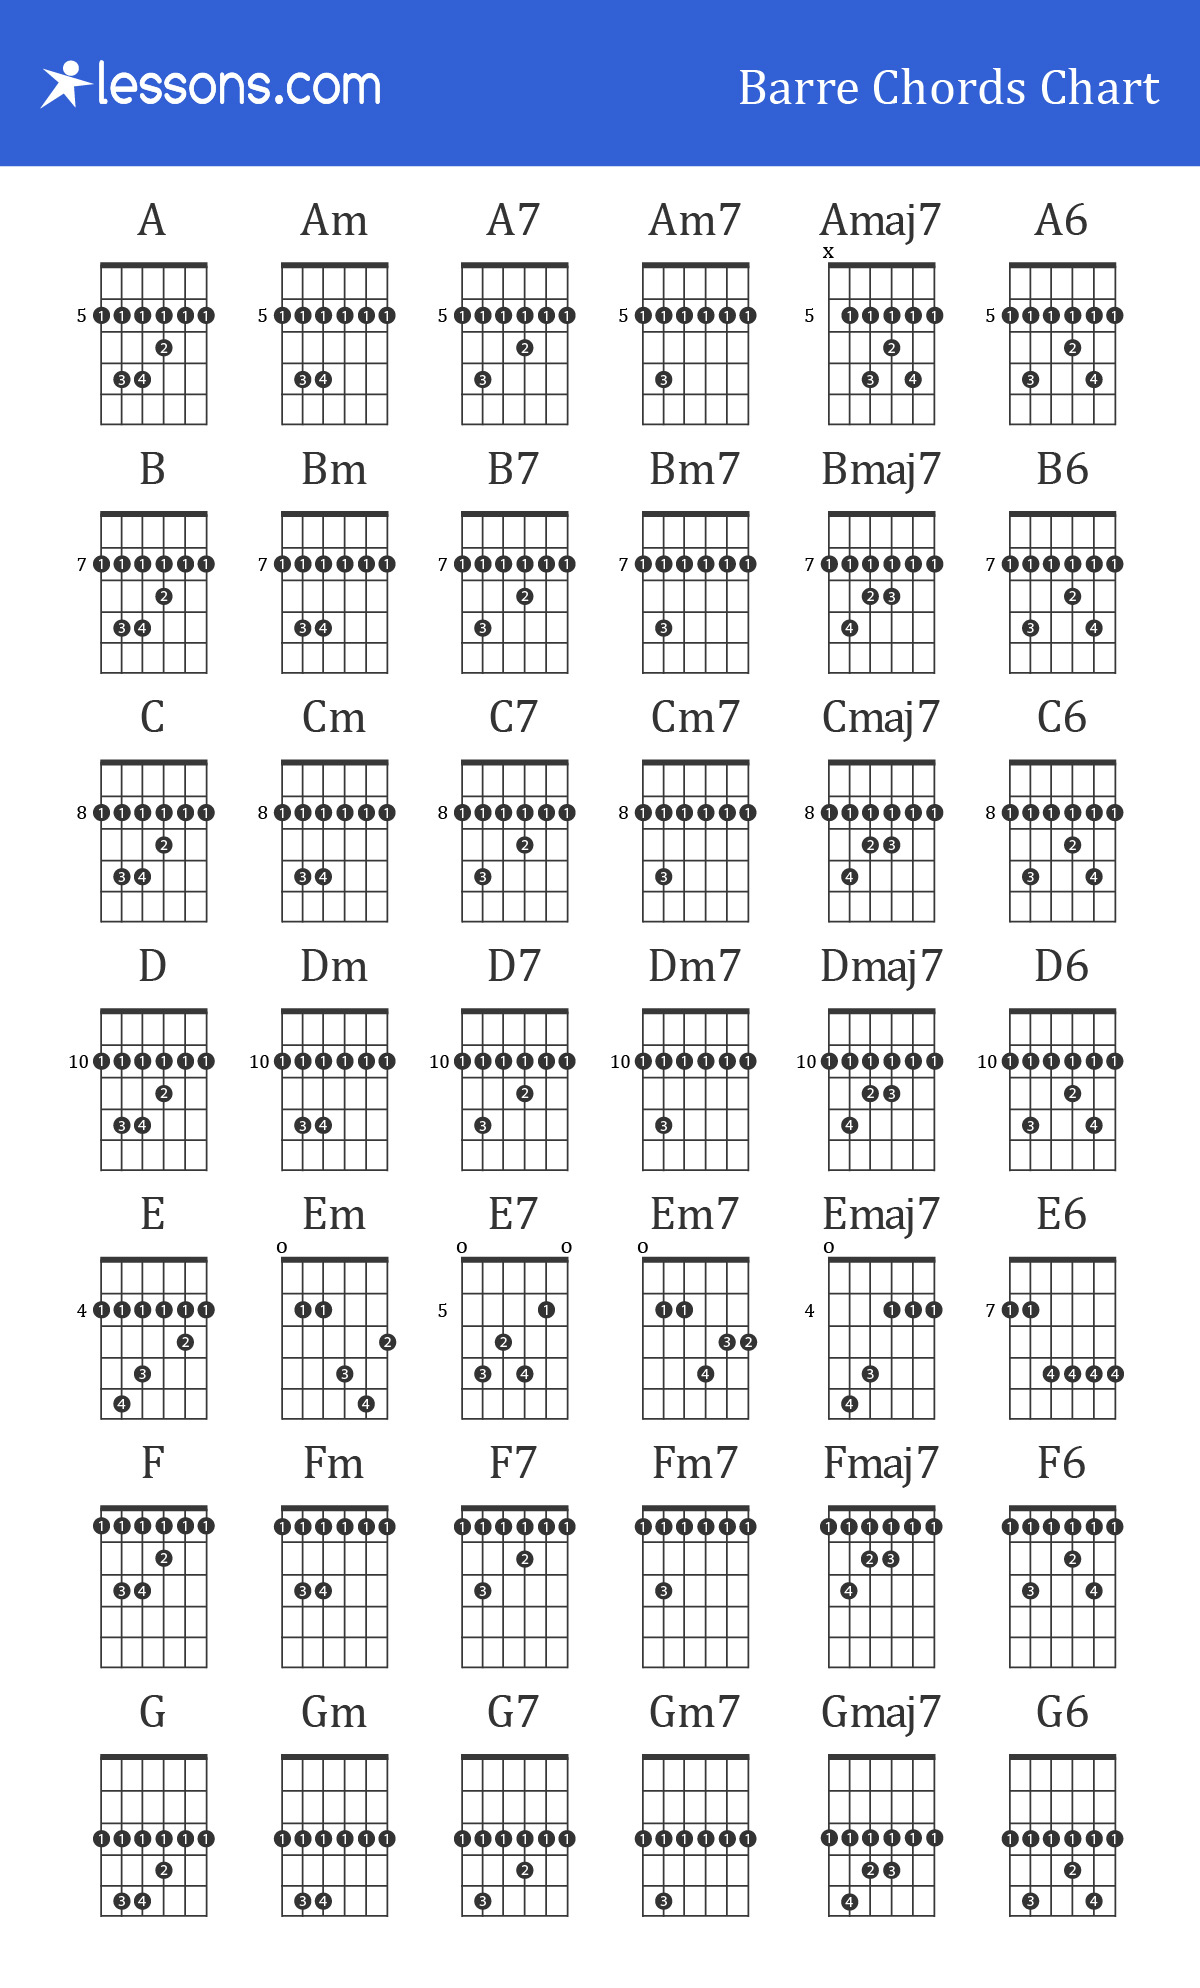 Dm7 Guitar Chord Guitar Chords The Complete Guide With Charts How Tos More